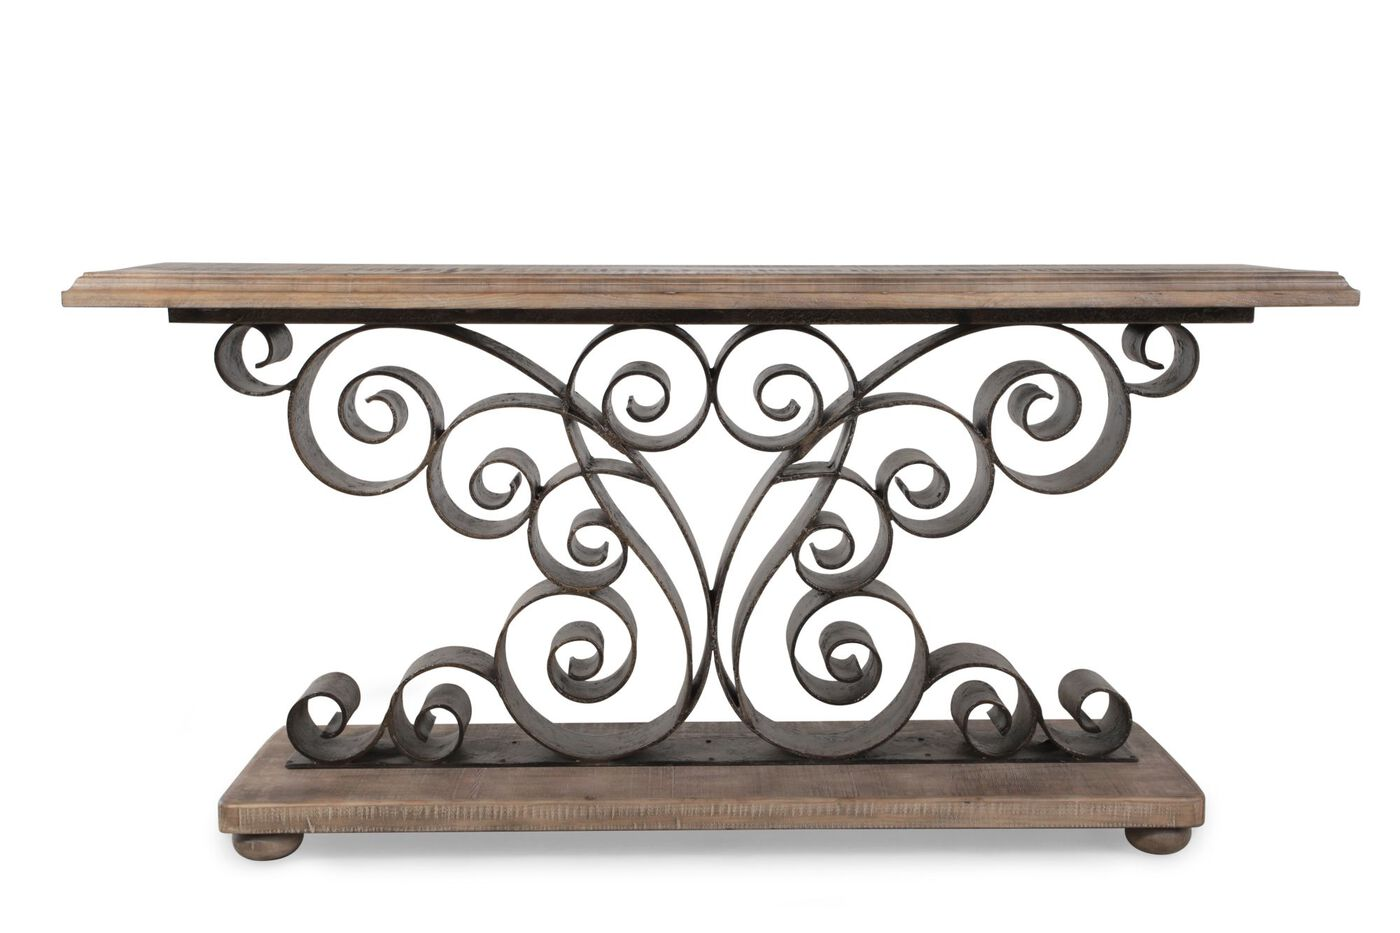 Scrolled metal and wood coffee table - Hooker Metal Scroll Console Table